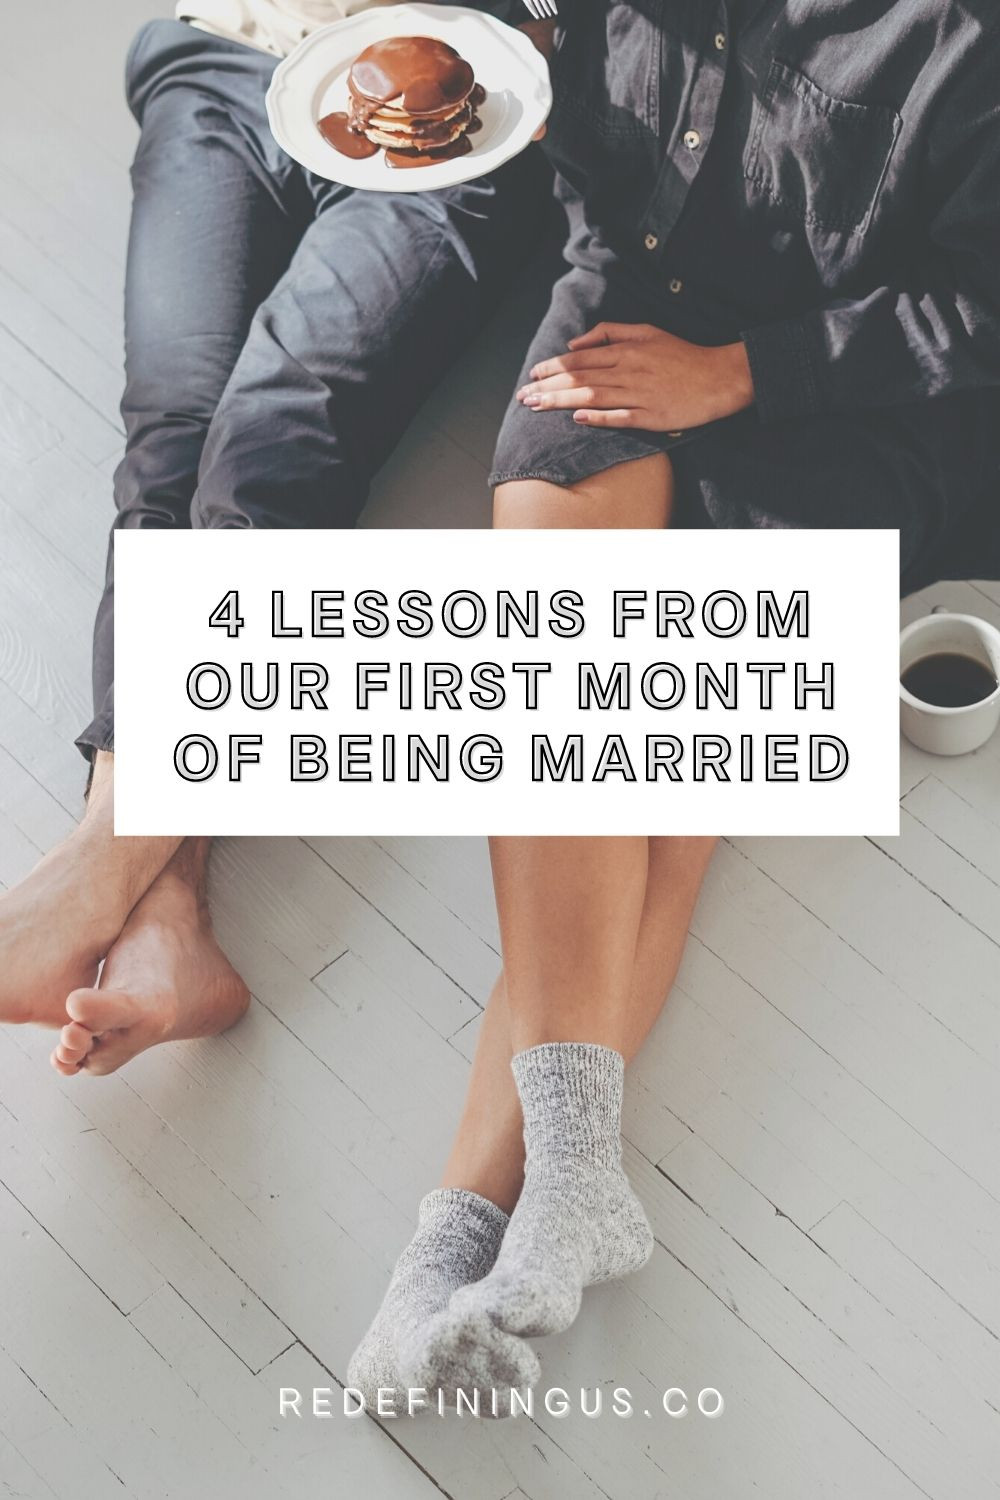 Lessons Learned from One Month of Being Married